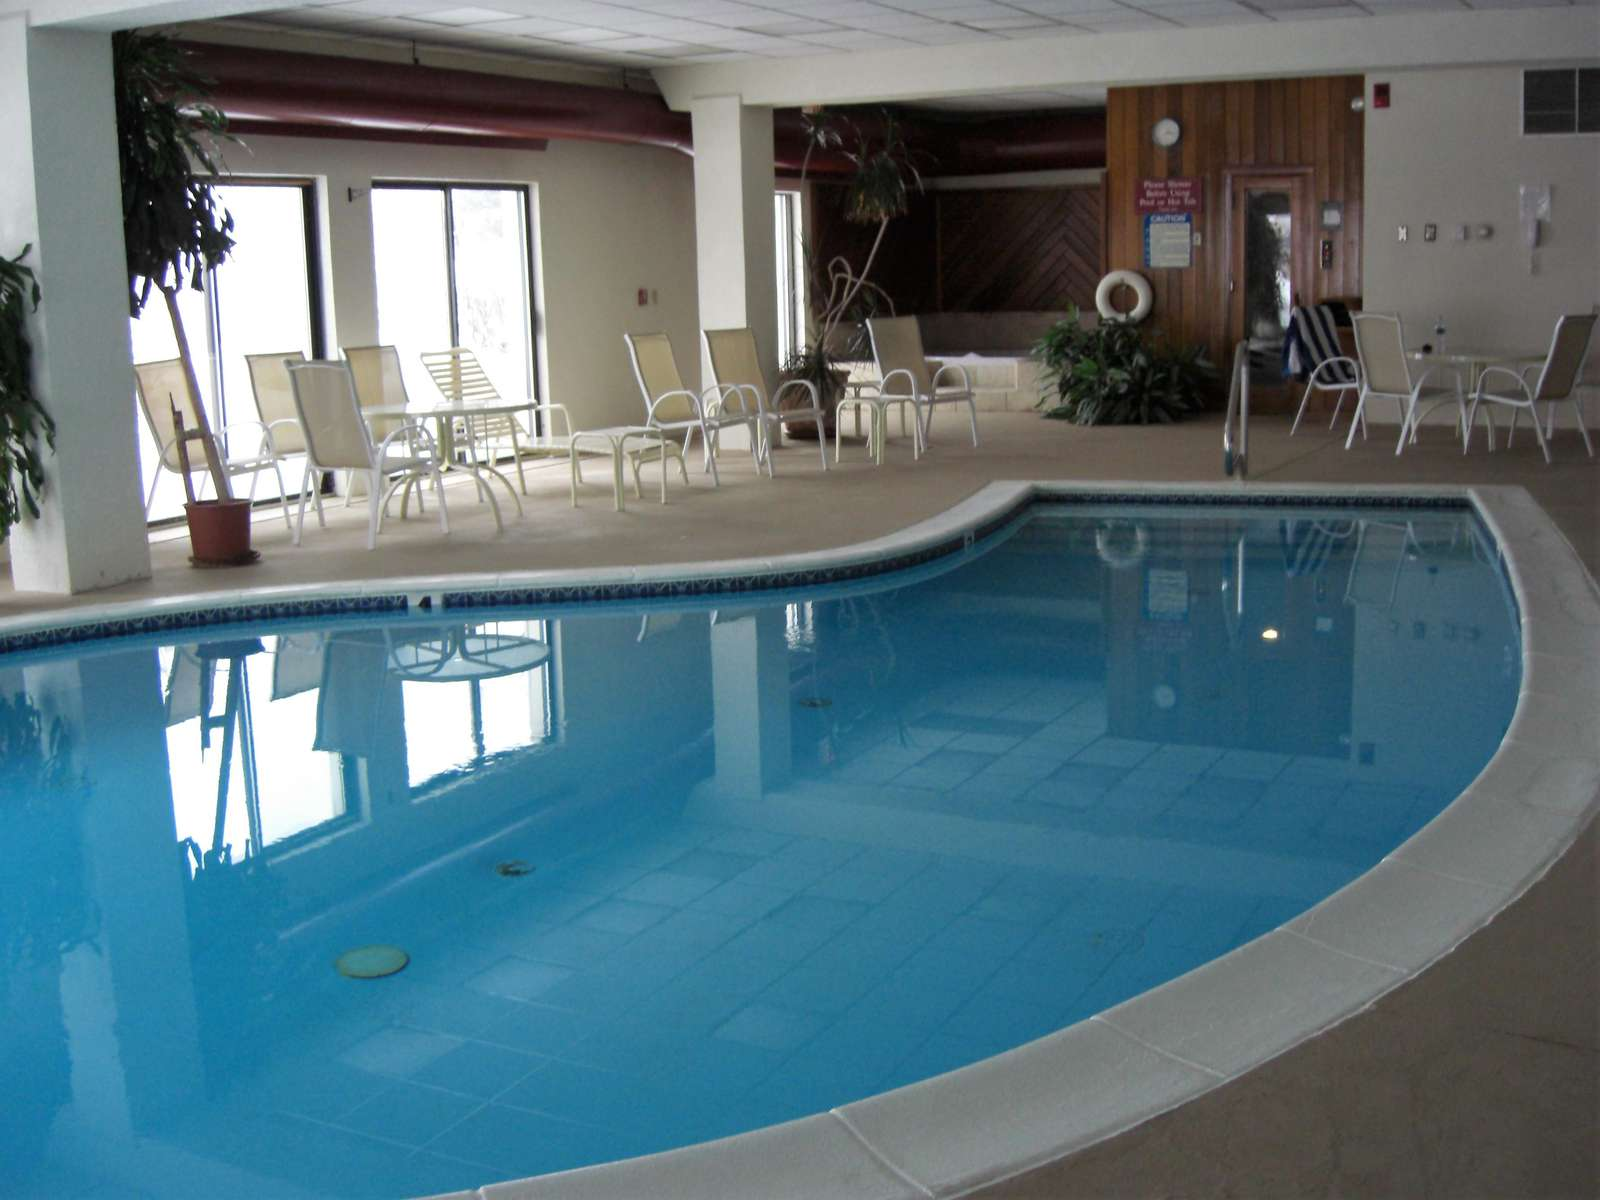 Amenity Center pool and hot tub